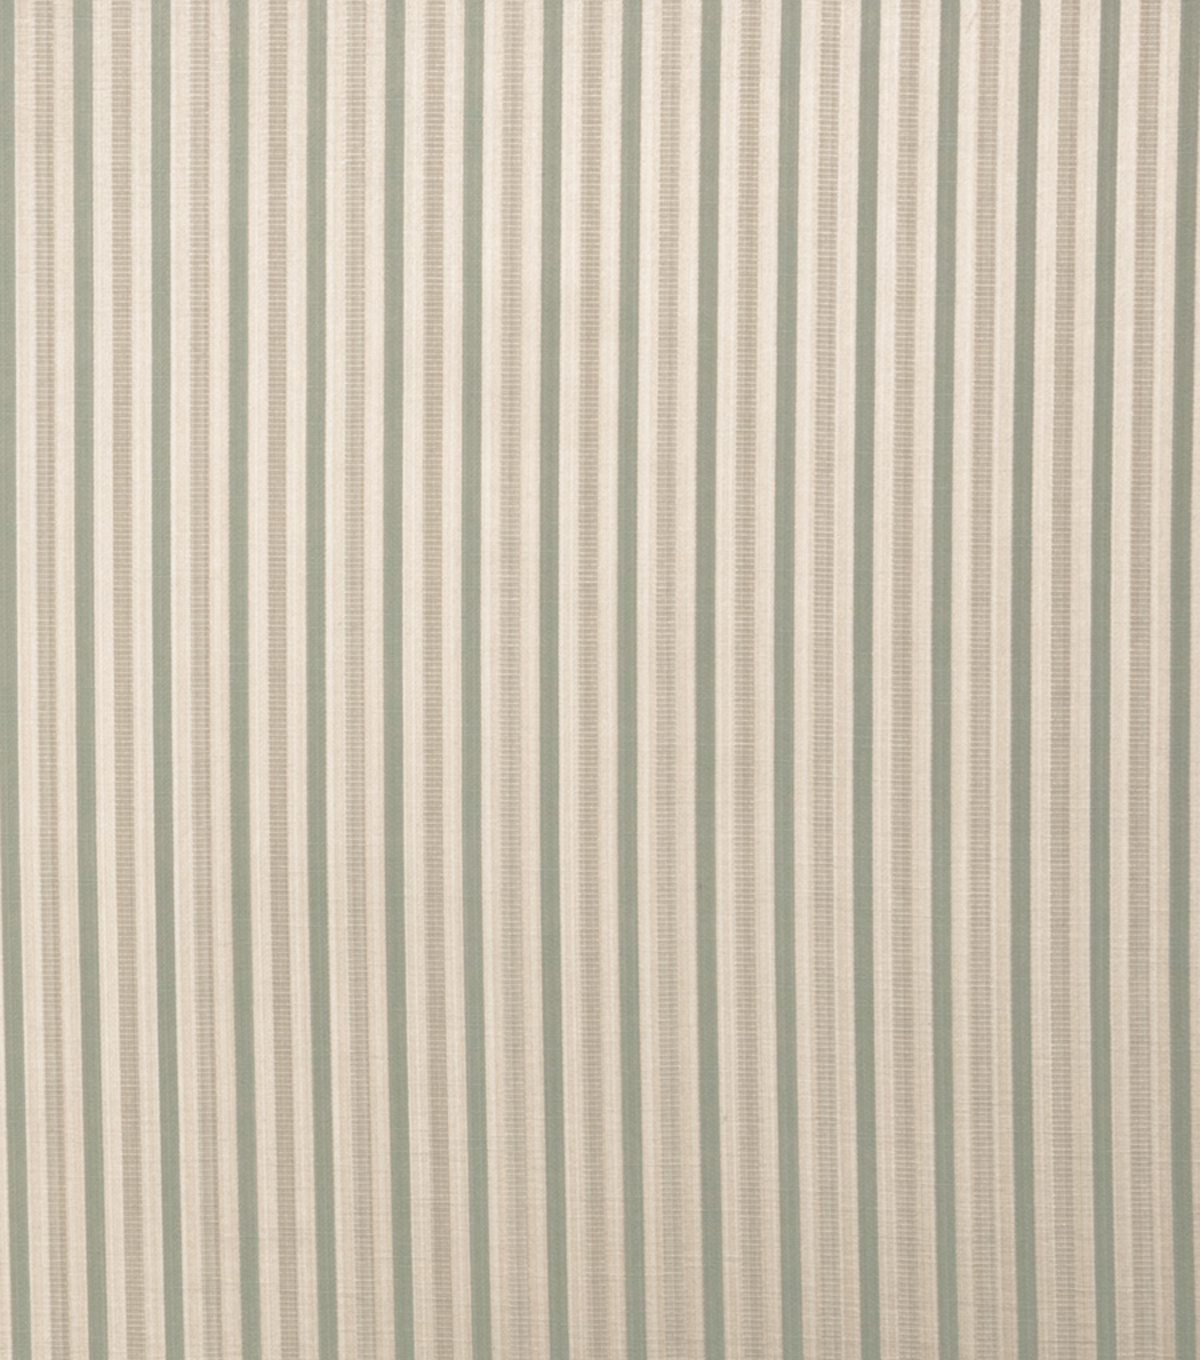 Home Decor 8\u0022x8\u0022 Fabric Swatch-Eaton Square Freshman /  Haze